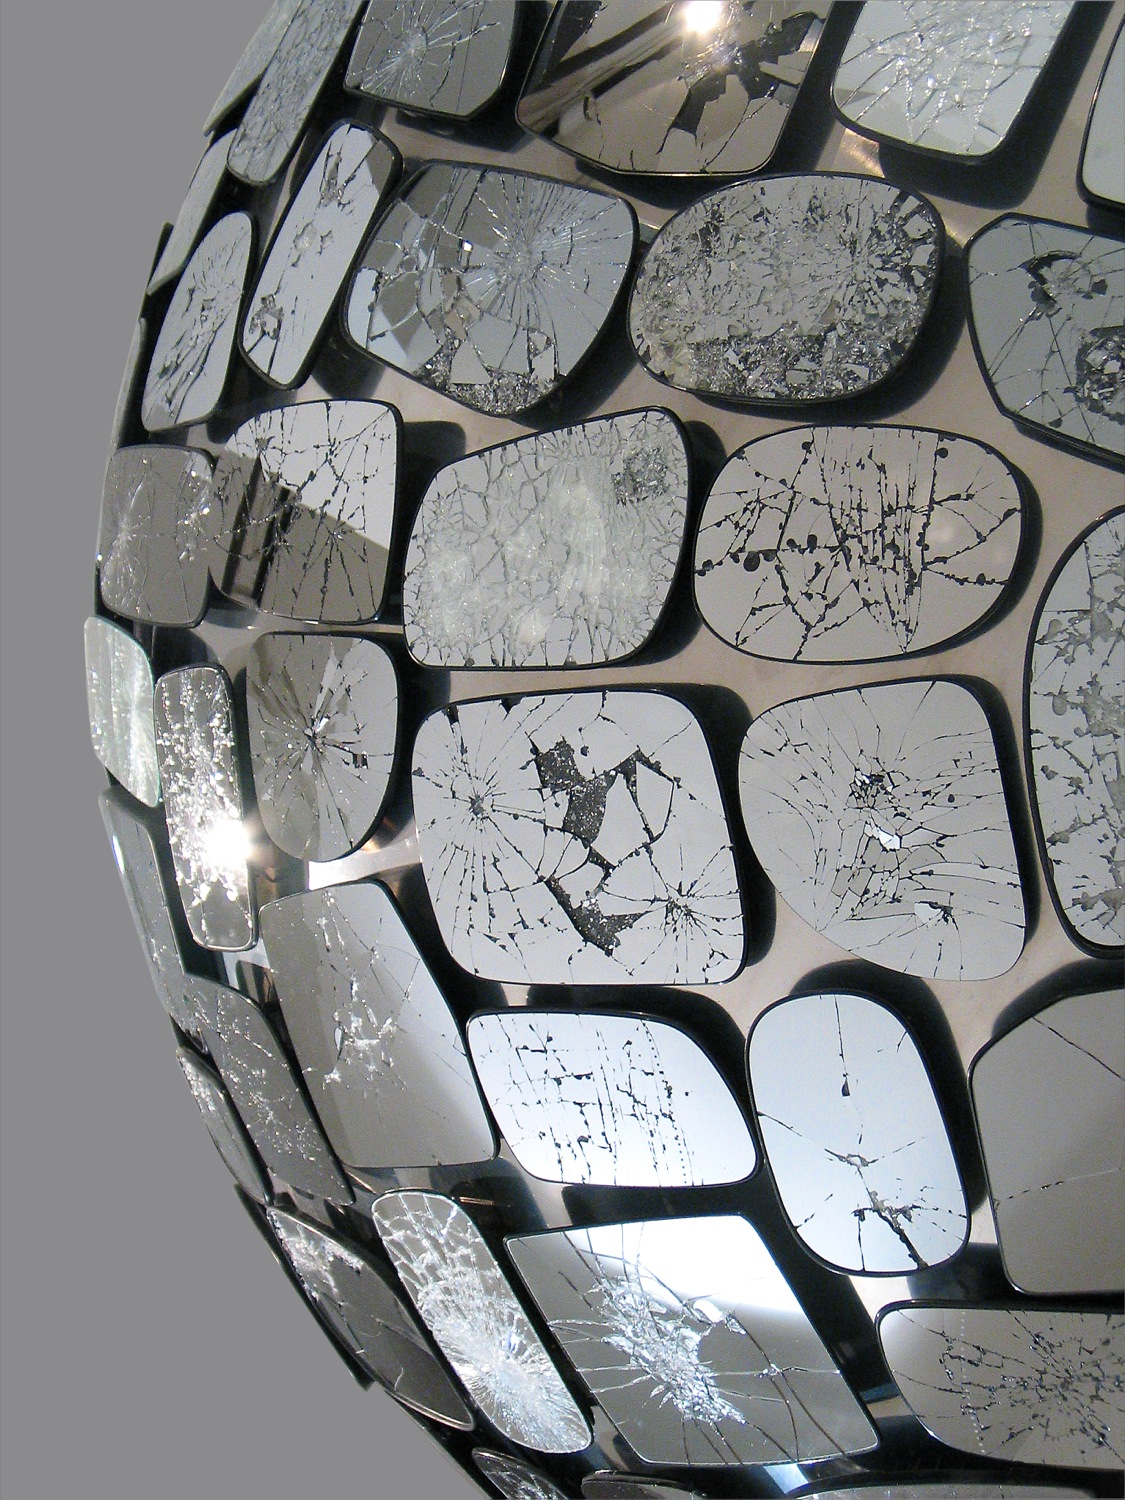 mirrorball-detail1-press_copy.jpg